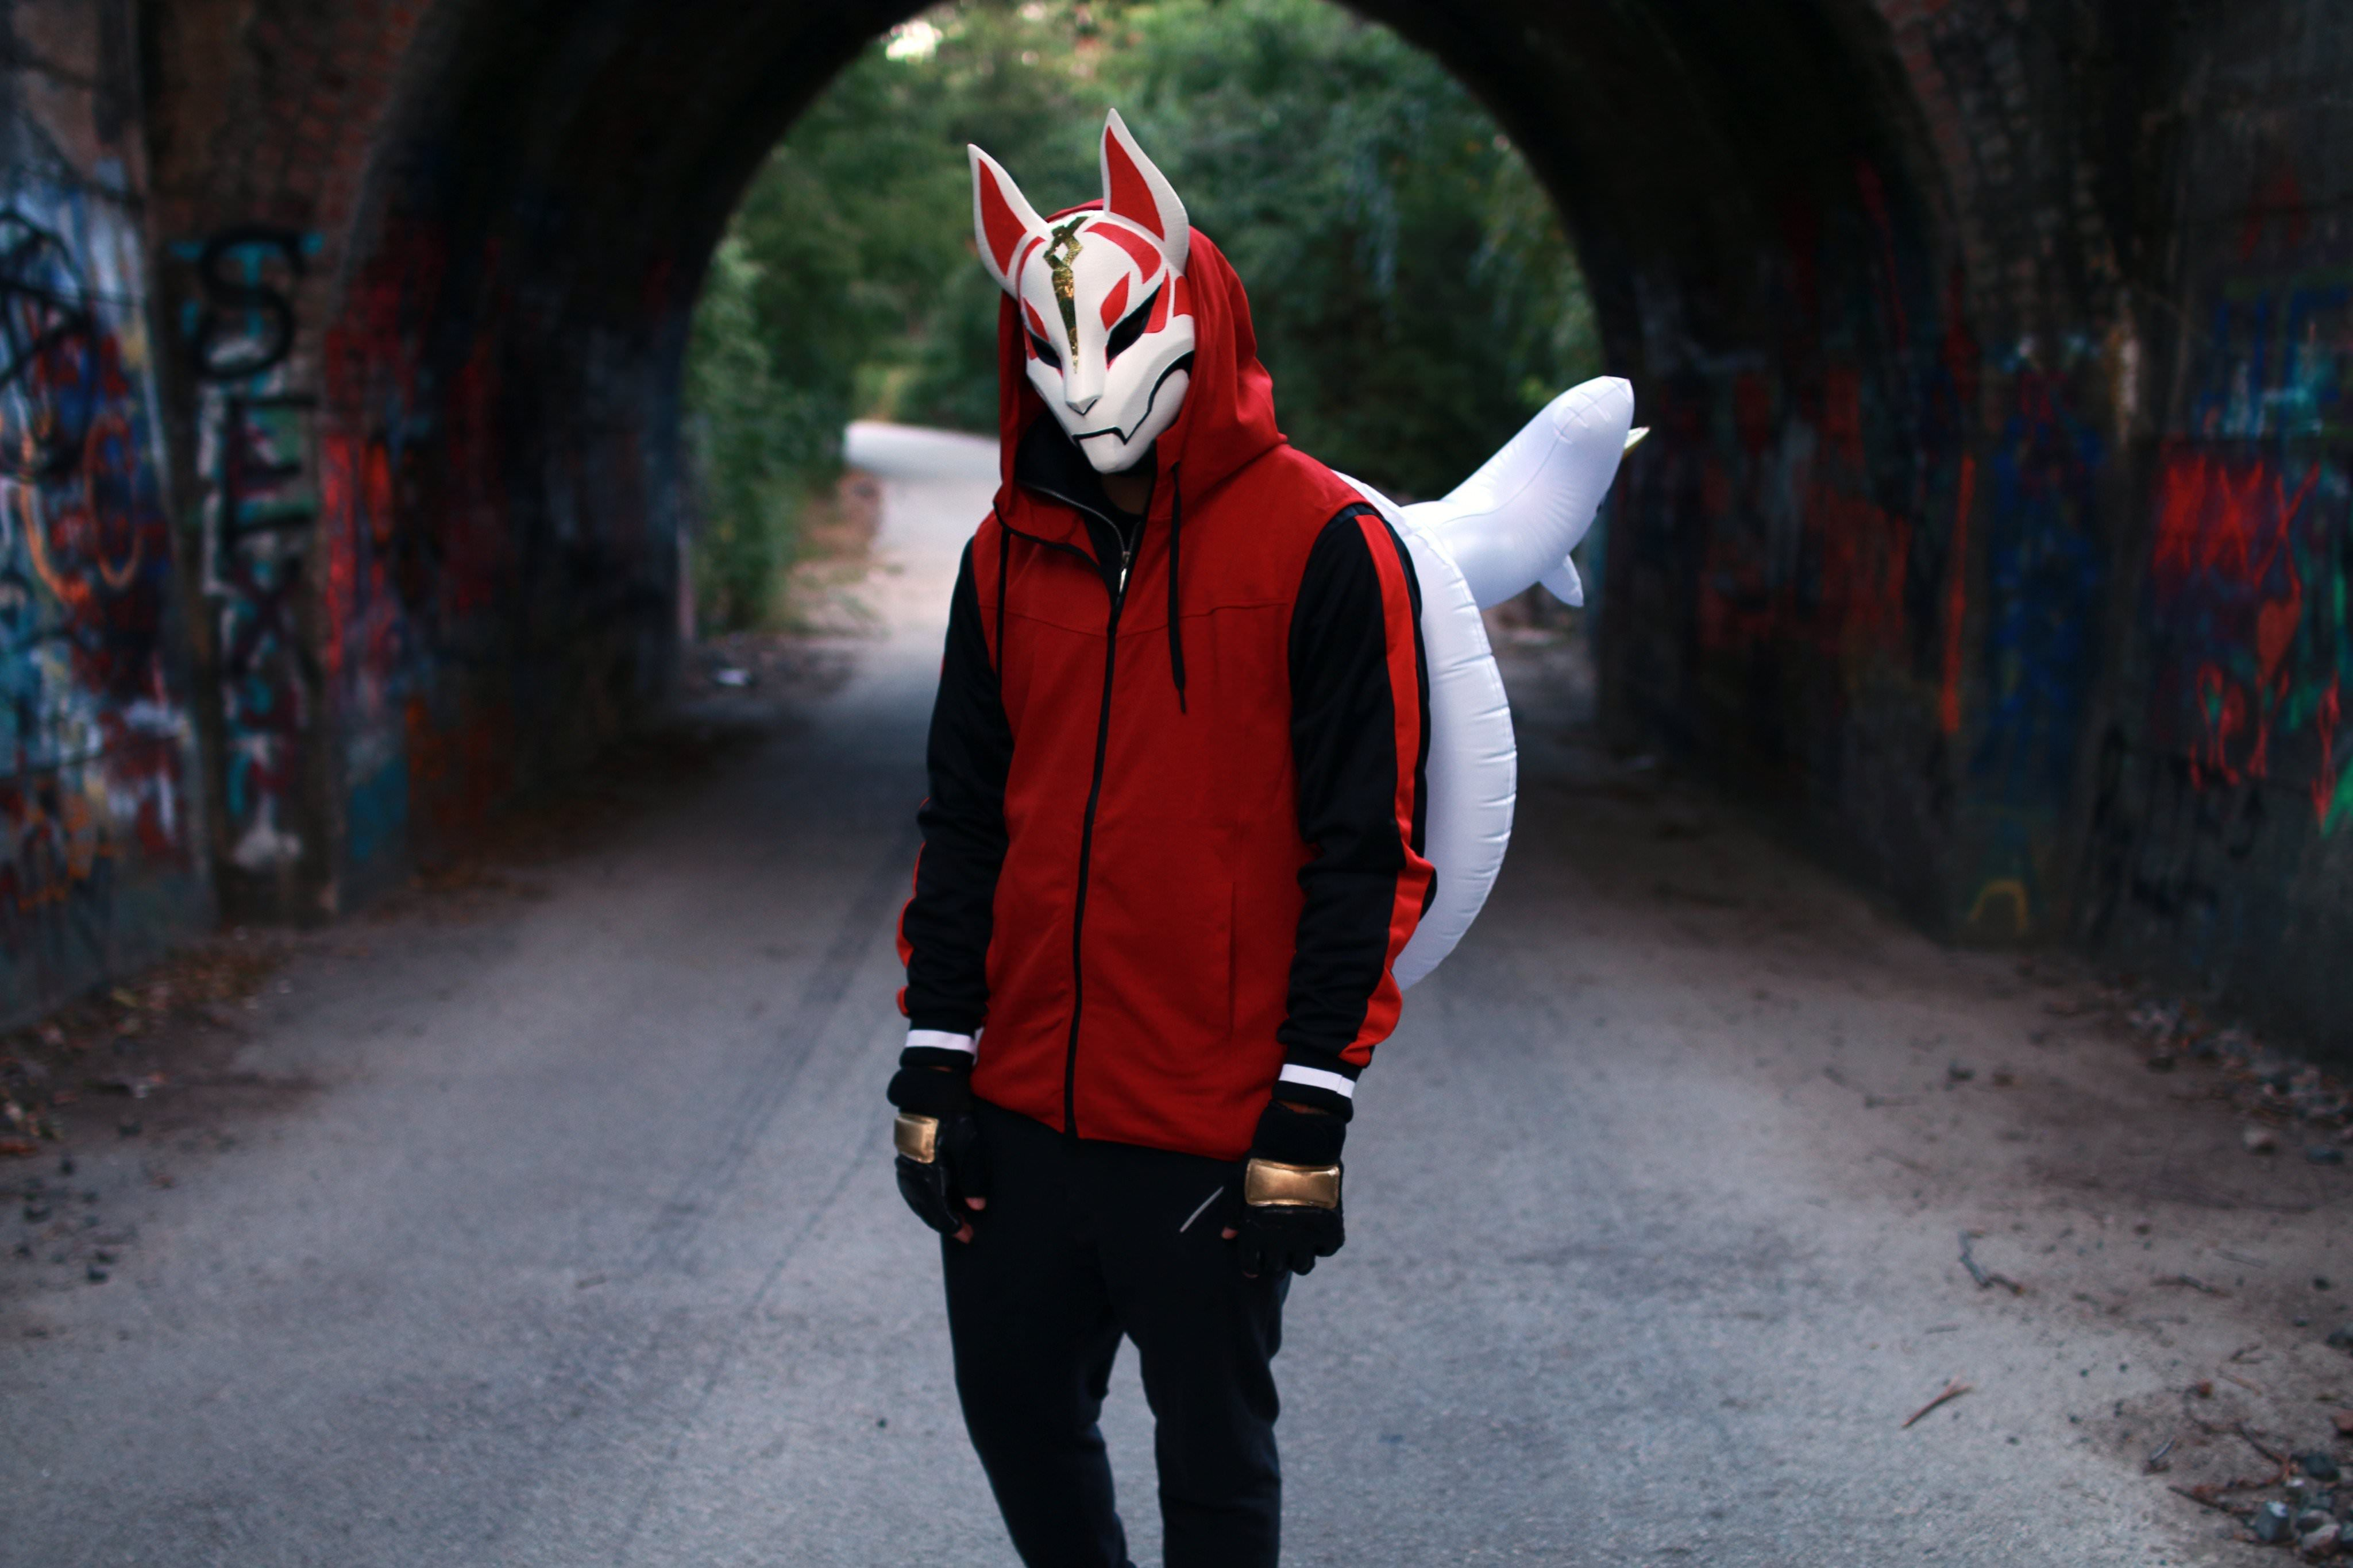 [Inspo] Drift Outfit From Fortnite https//ift.tt/2n3NPEp